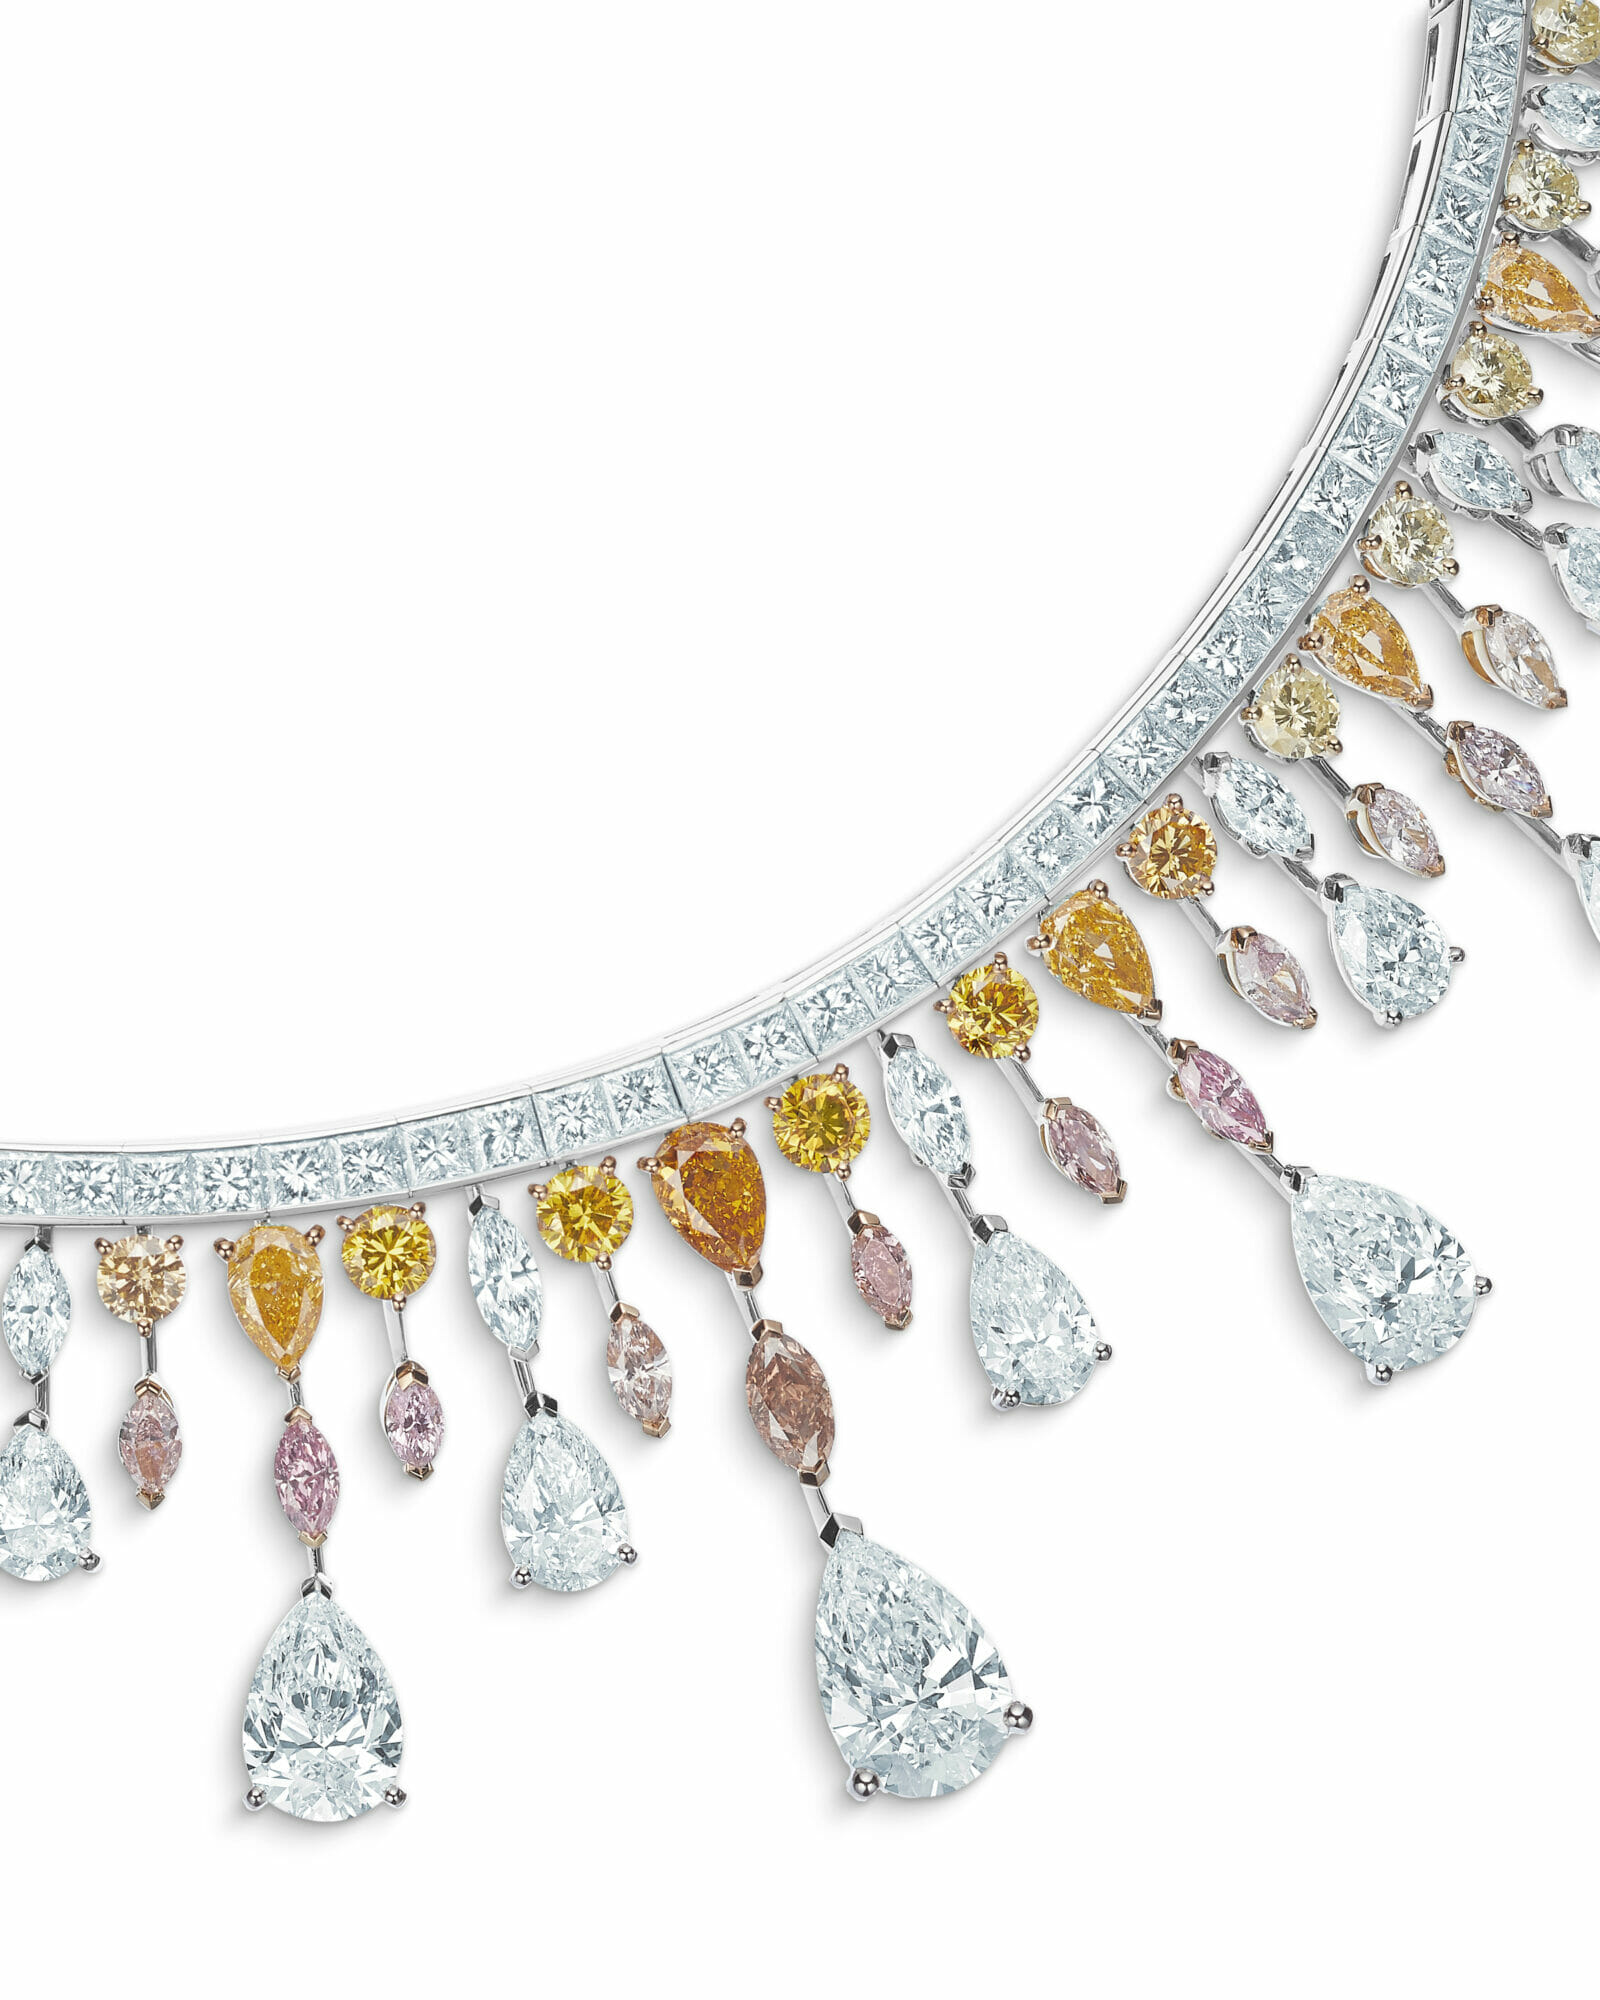 De Beers mixed cut diamond earrings and necklace